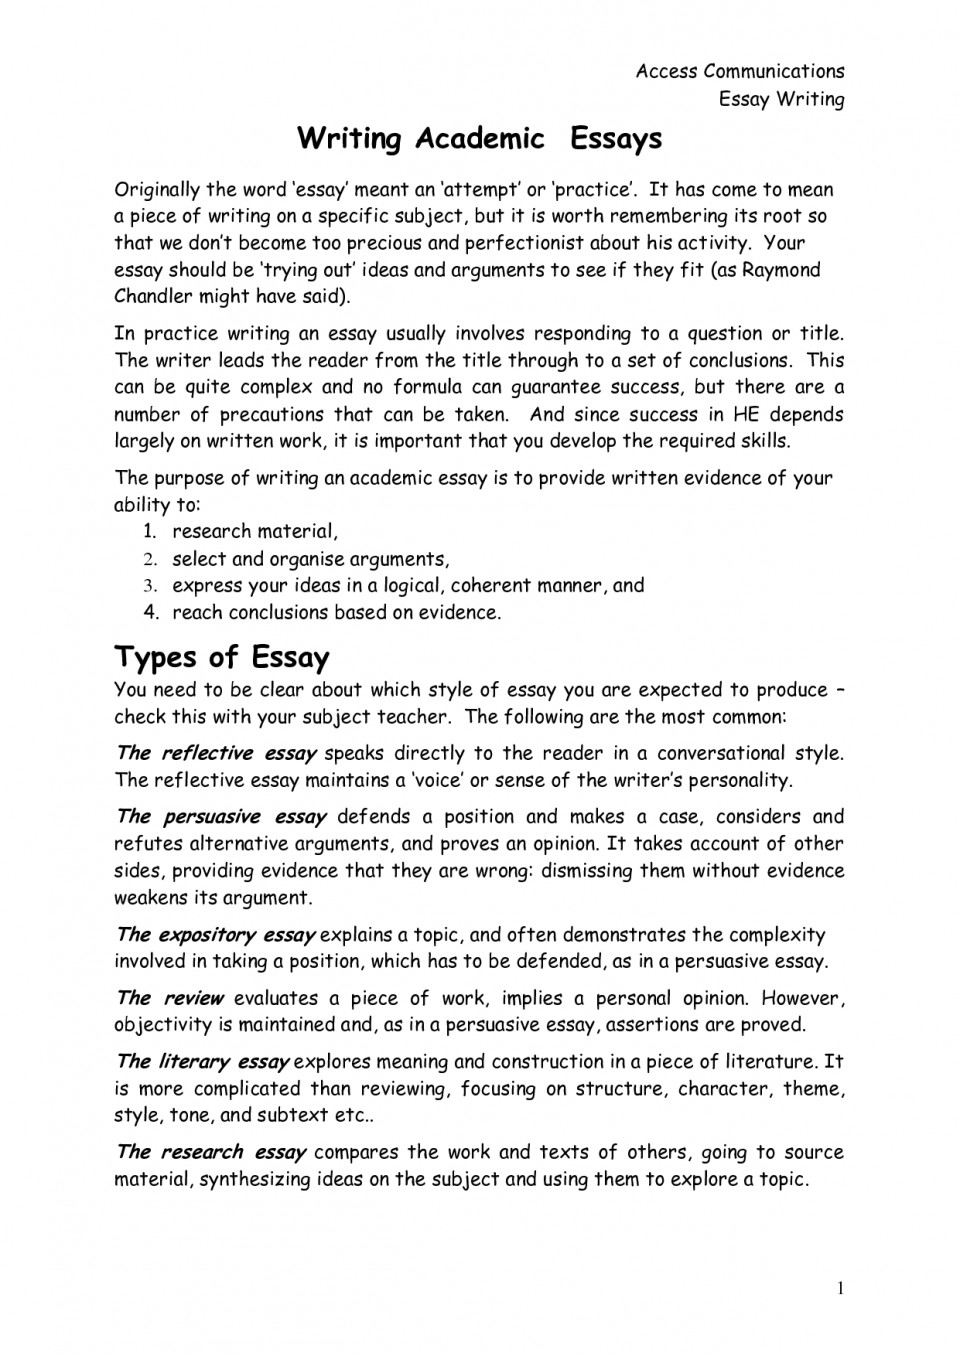 017 Essay Example Write For Me Amazing Uk My College Free Cheap 960